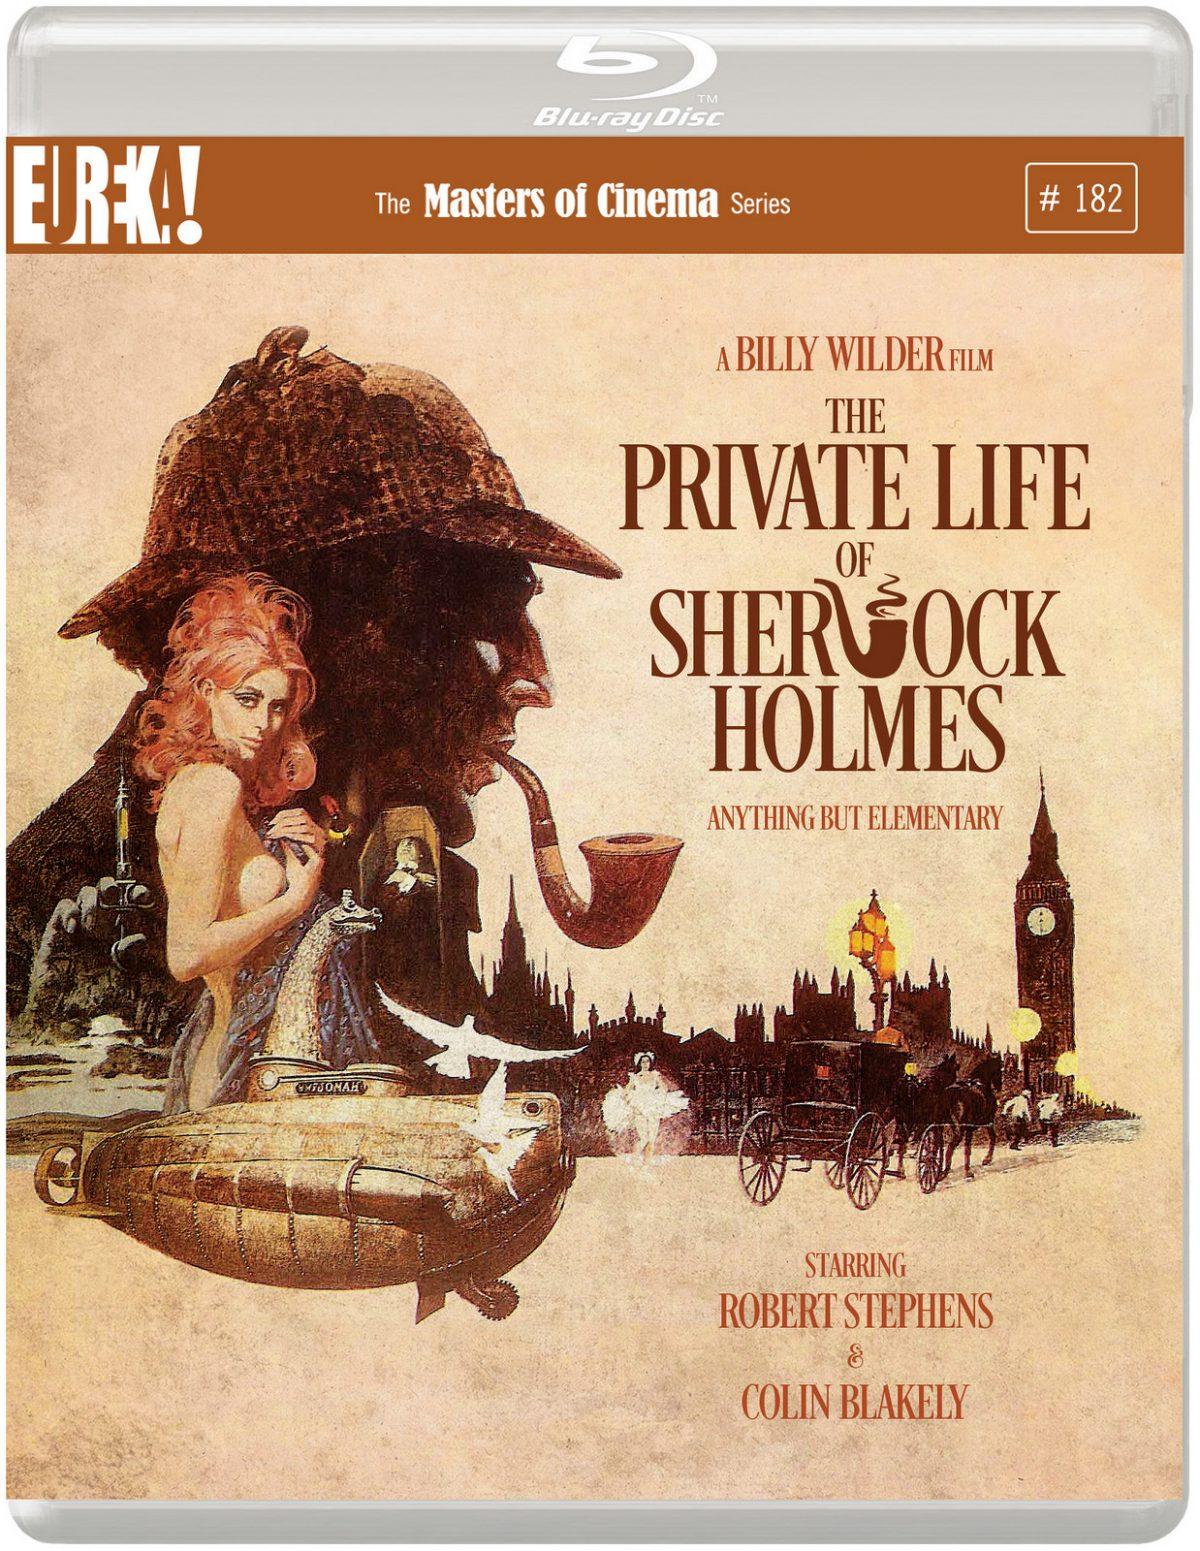 Great news for classic movie fans as Eureka Entertainment announces the release of The Private Life of Sherlock Holmes on Blu-ray.